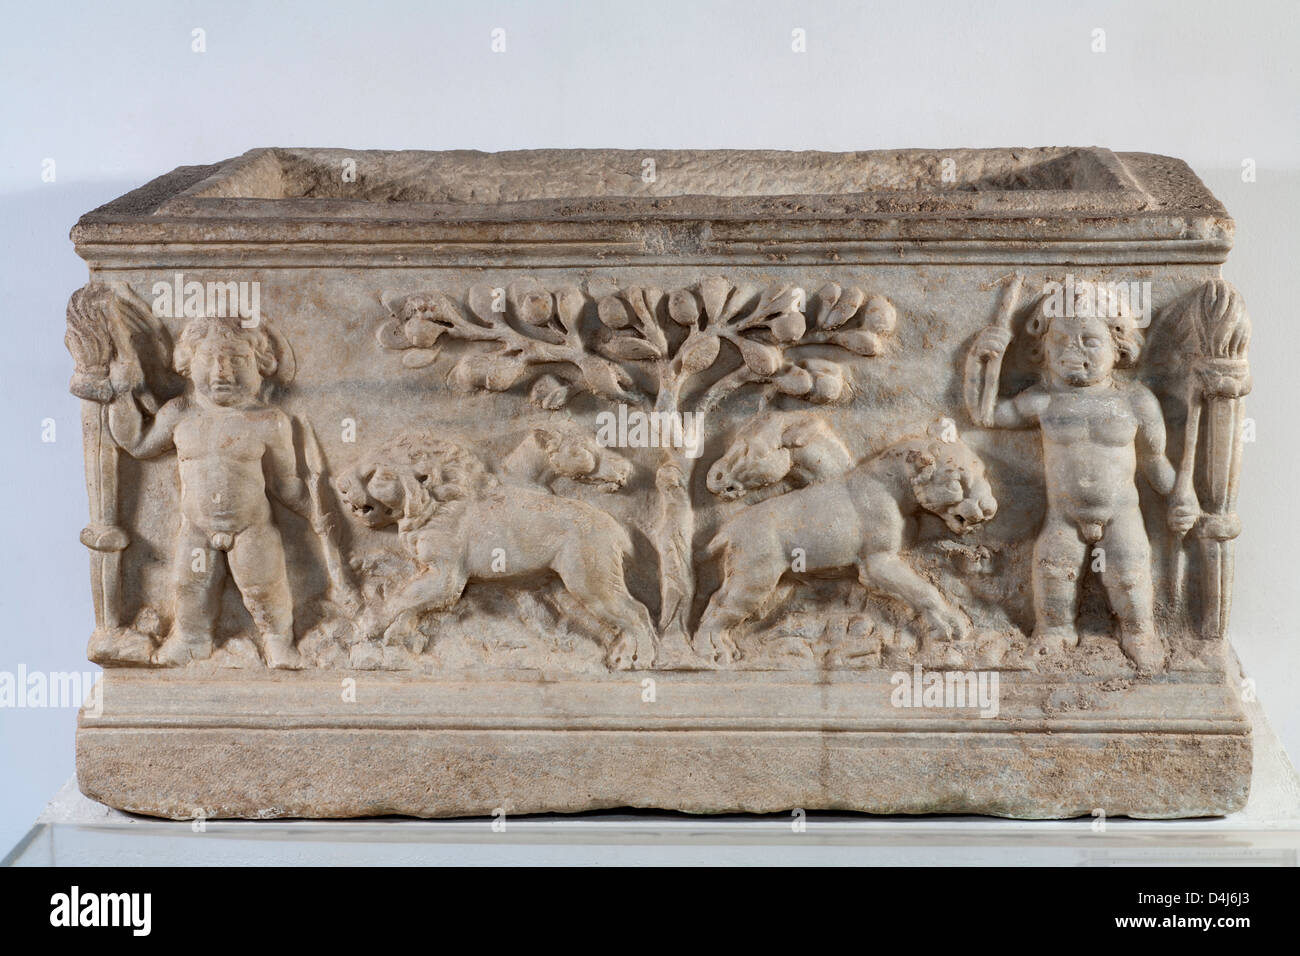 Archaeological artefact, marble sarcophagus from Roman Site of Munigua, Seville, Spain. - Stock Image